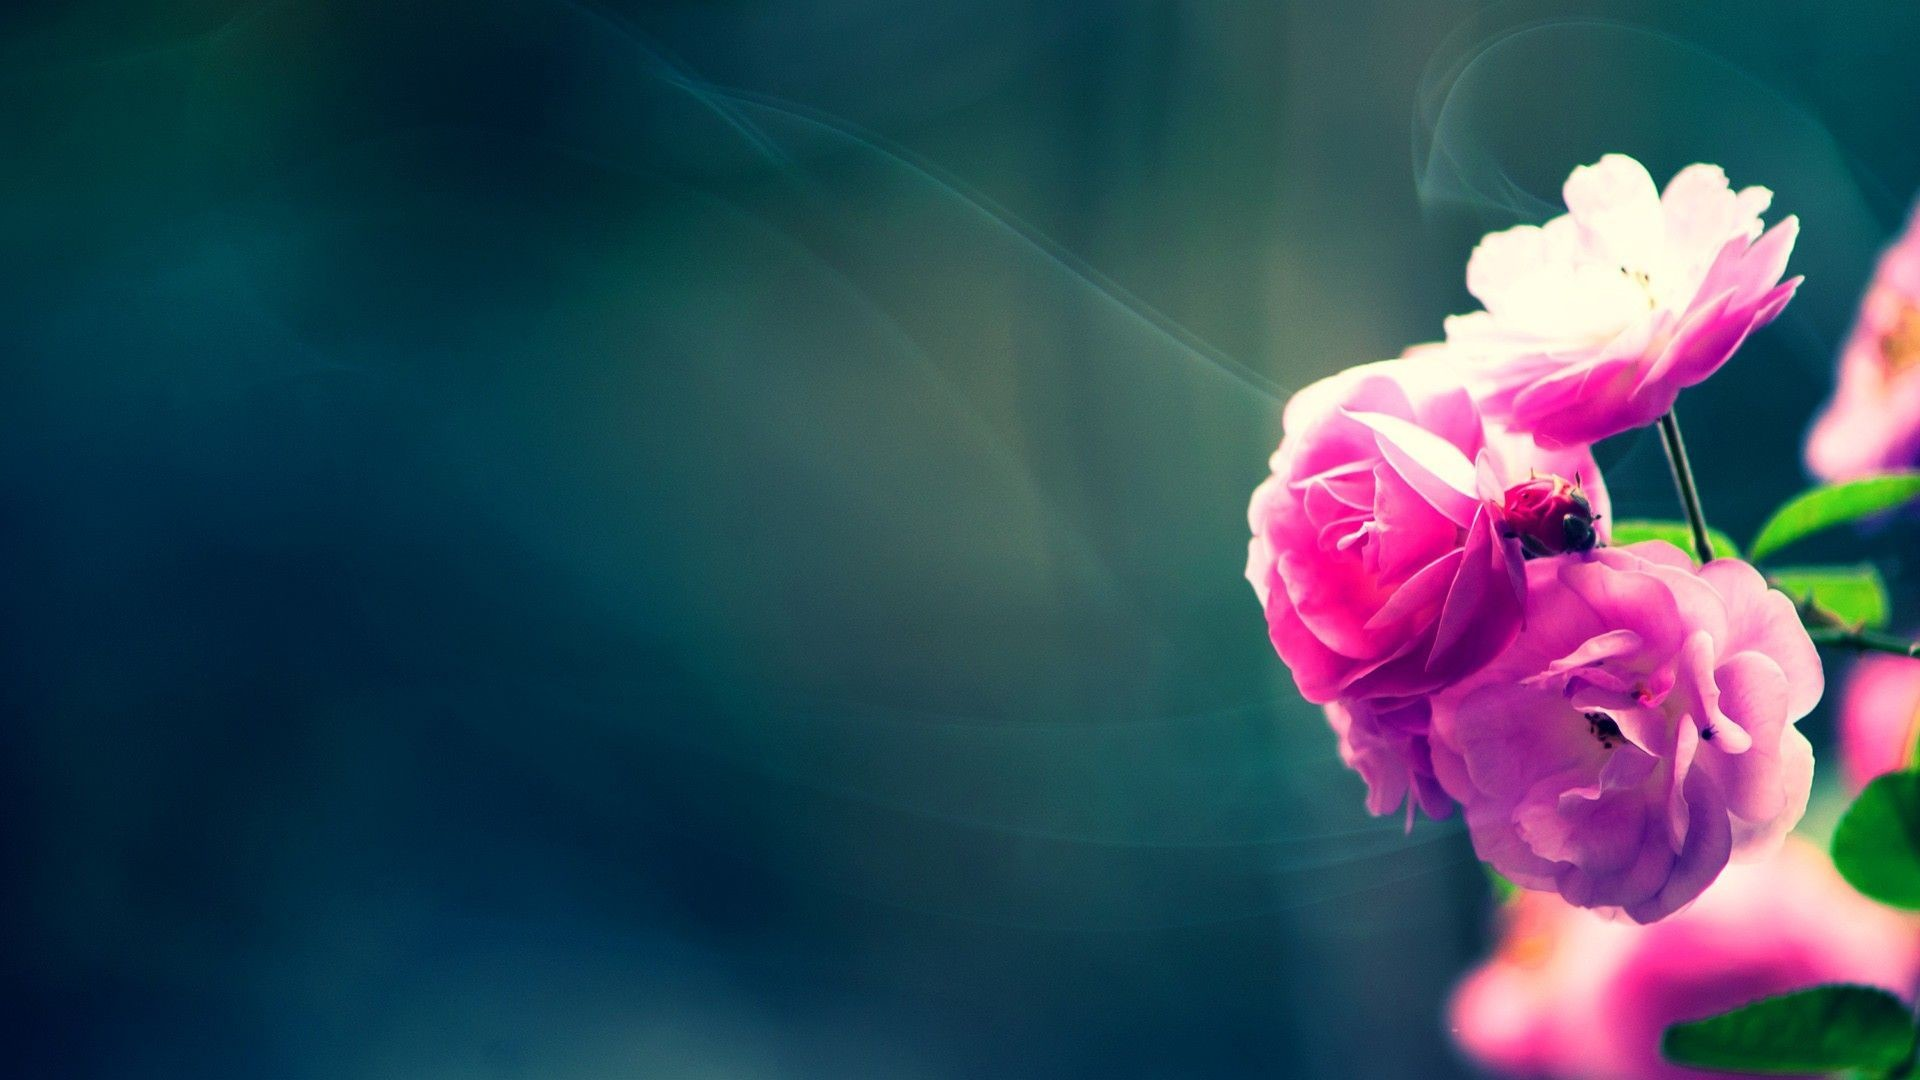 Res: 1920x1080, Flower Wallpapers | Best Wallpapers